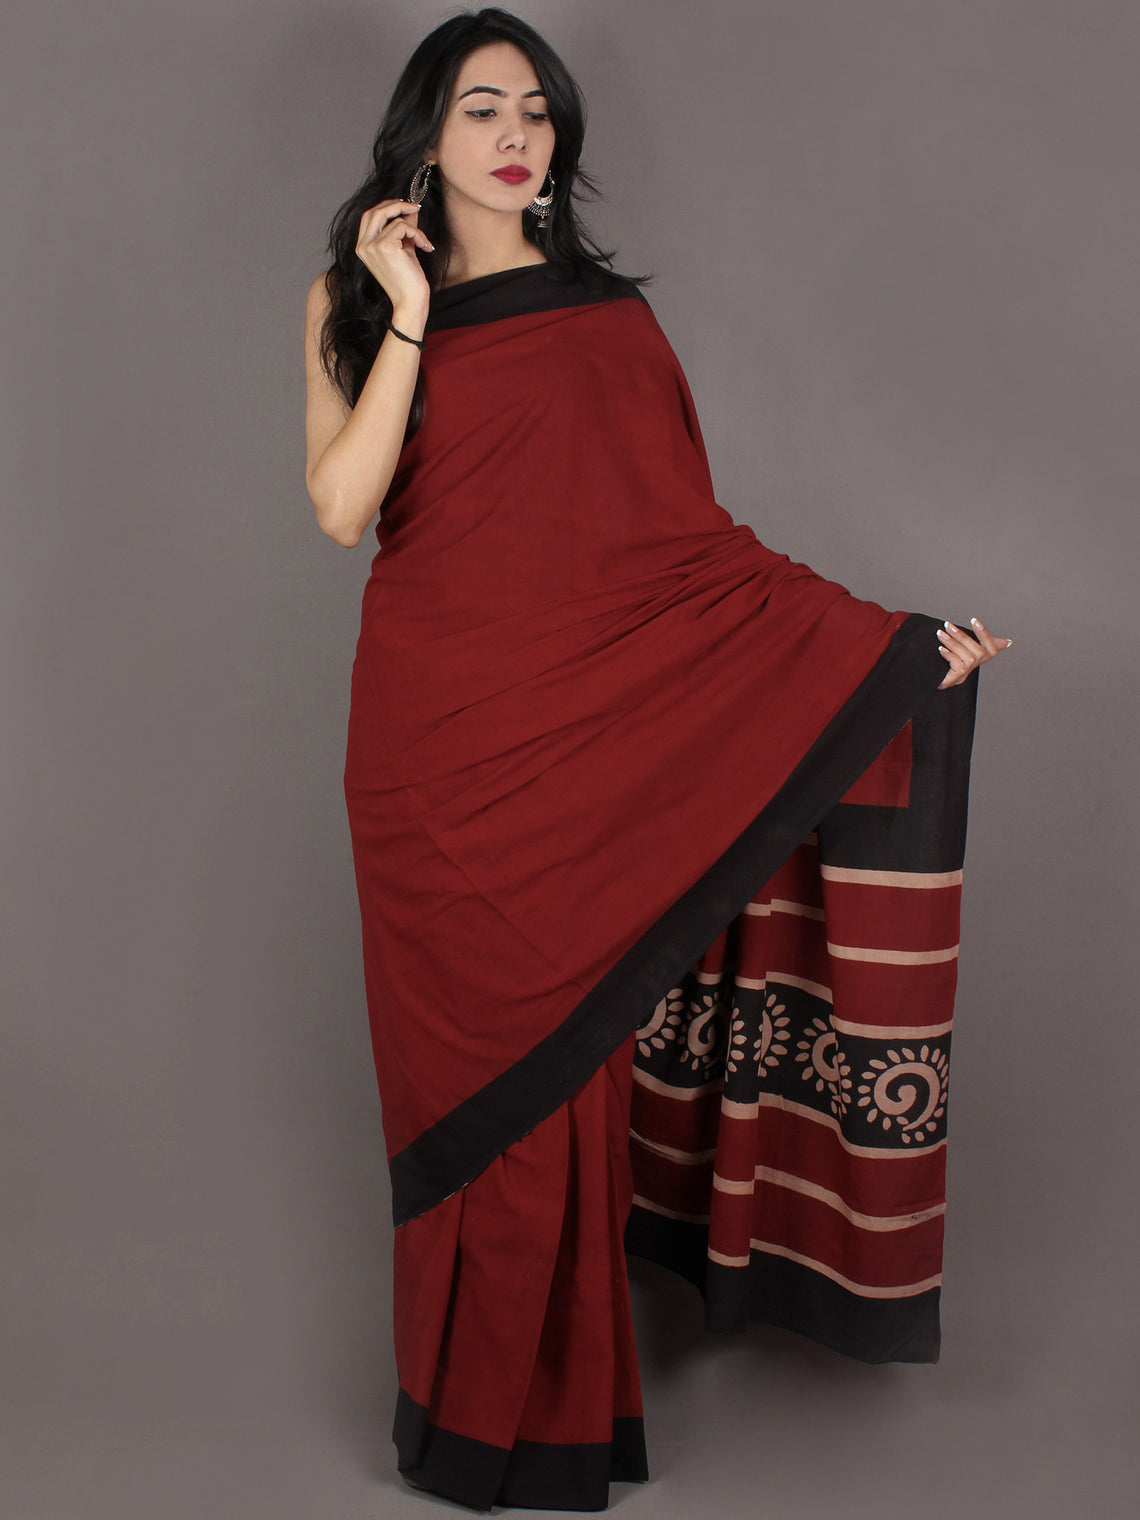 Maroon Black Hand Block Painted & Printed in Natural Colors Cotton Mul Saree - S031701005